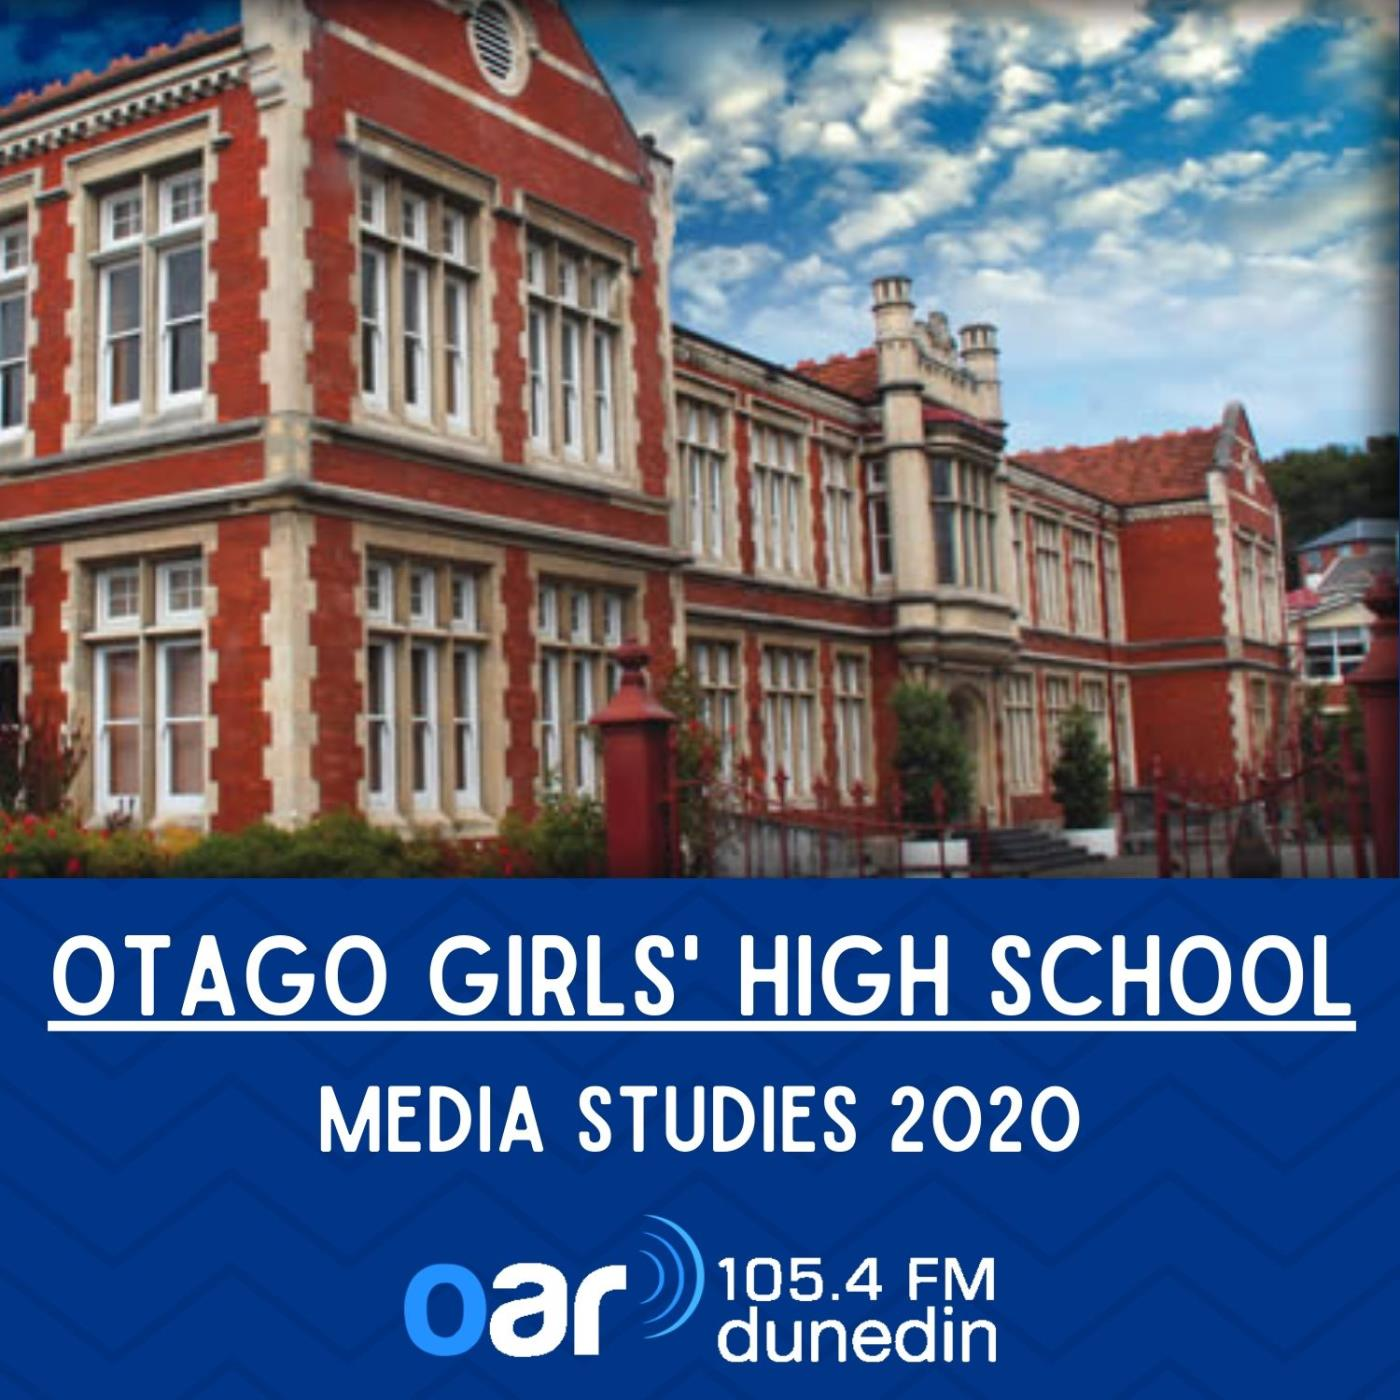 Otago Girls' High School 2020